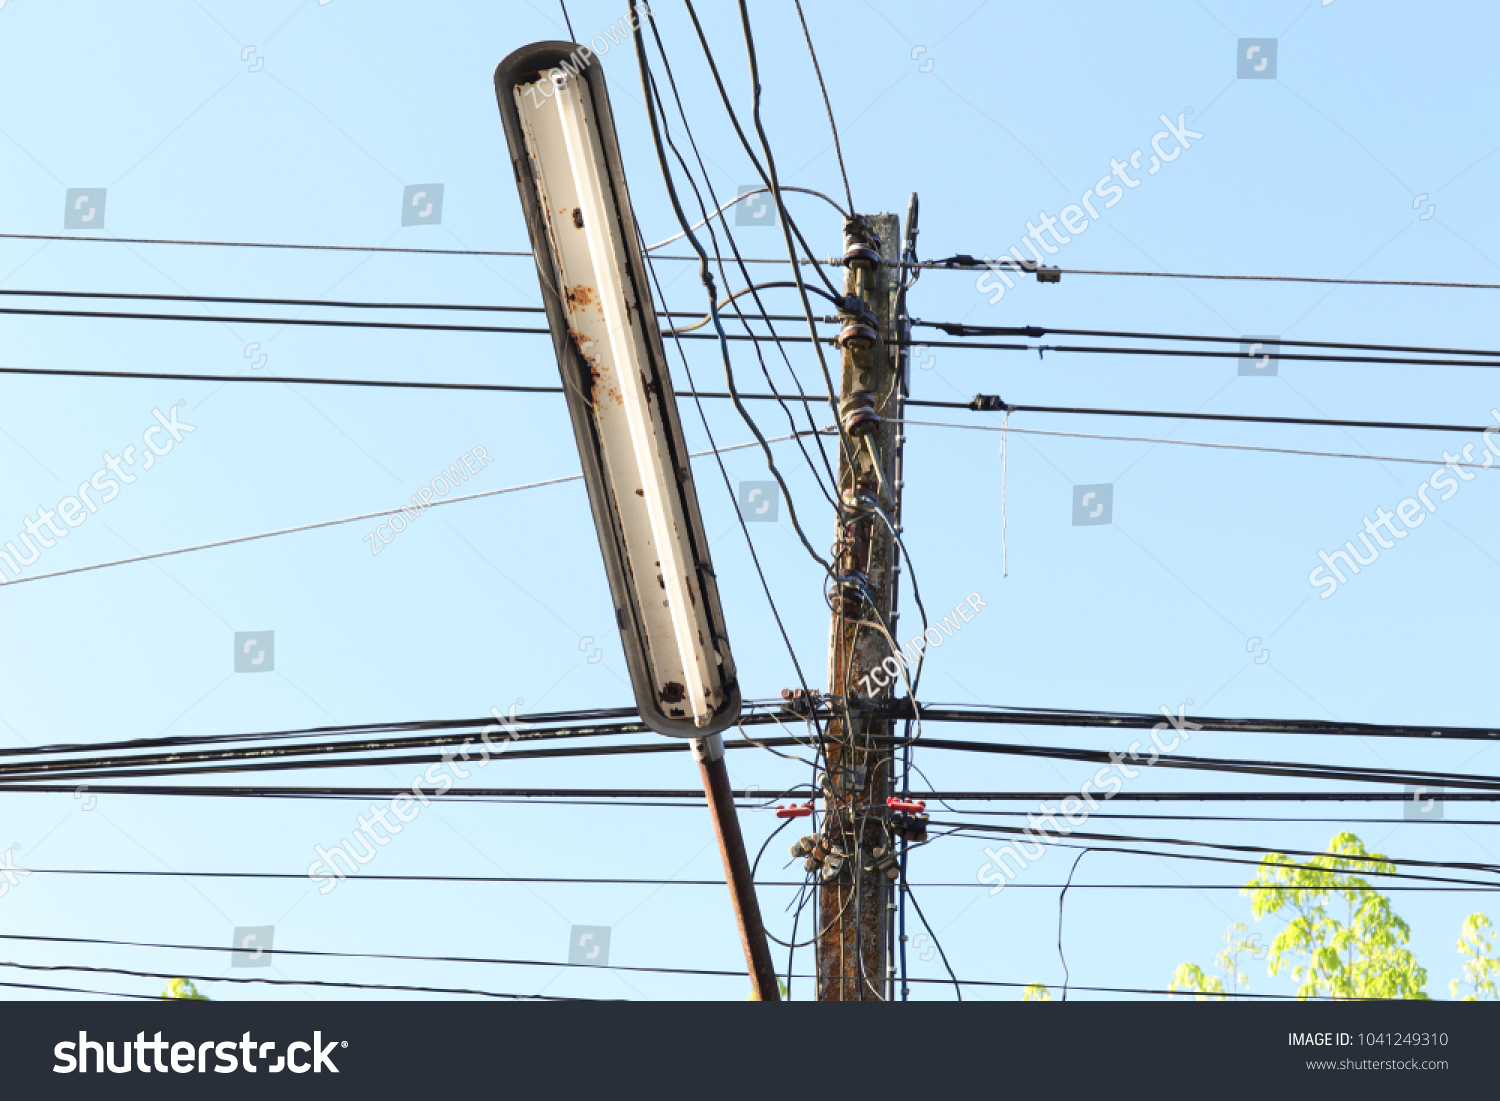 Street Neon Light Messy Electrical Wires Stock Photo (Royalty Free ...